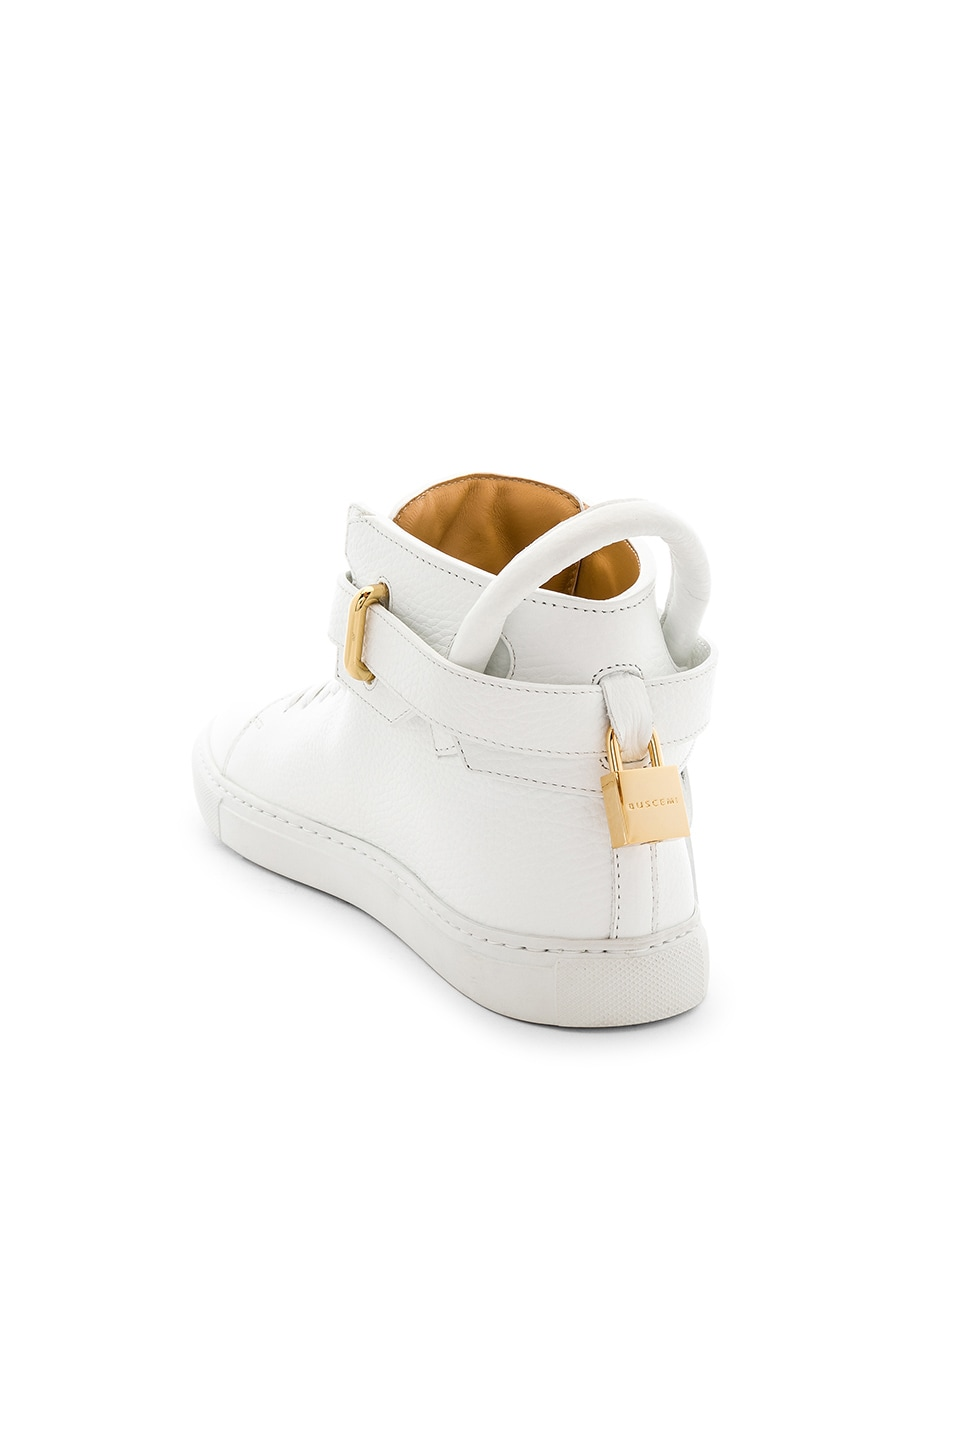 Image 3 of Buscemi 100MM High Top Pebbled Leather Sneakers in White